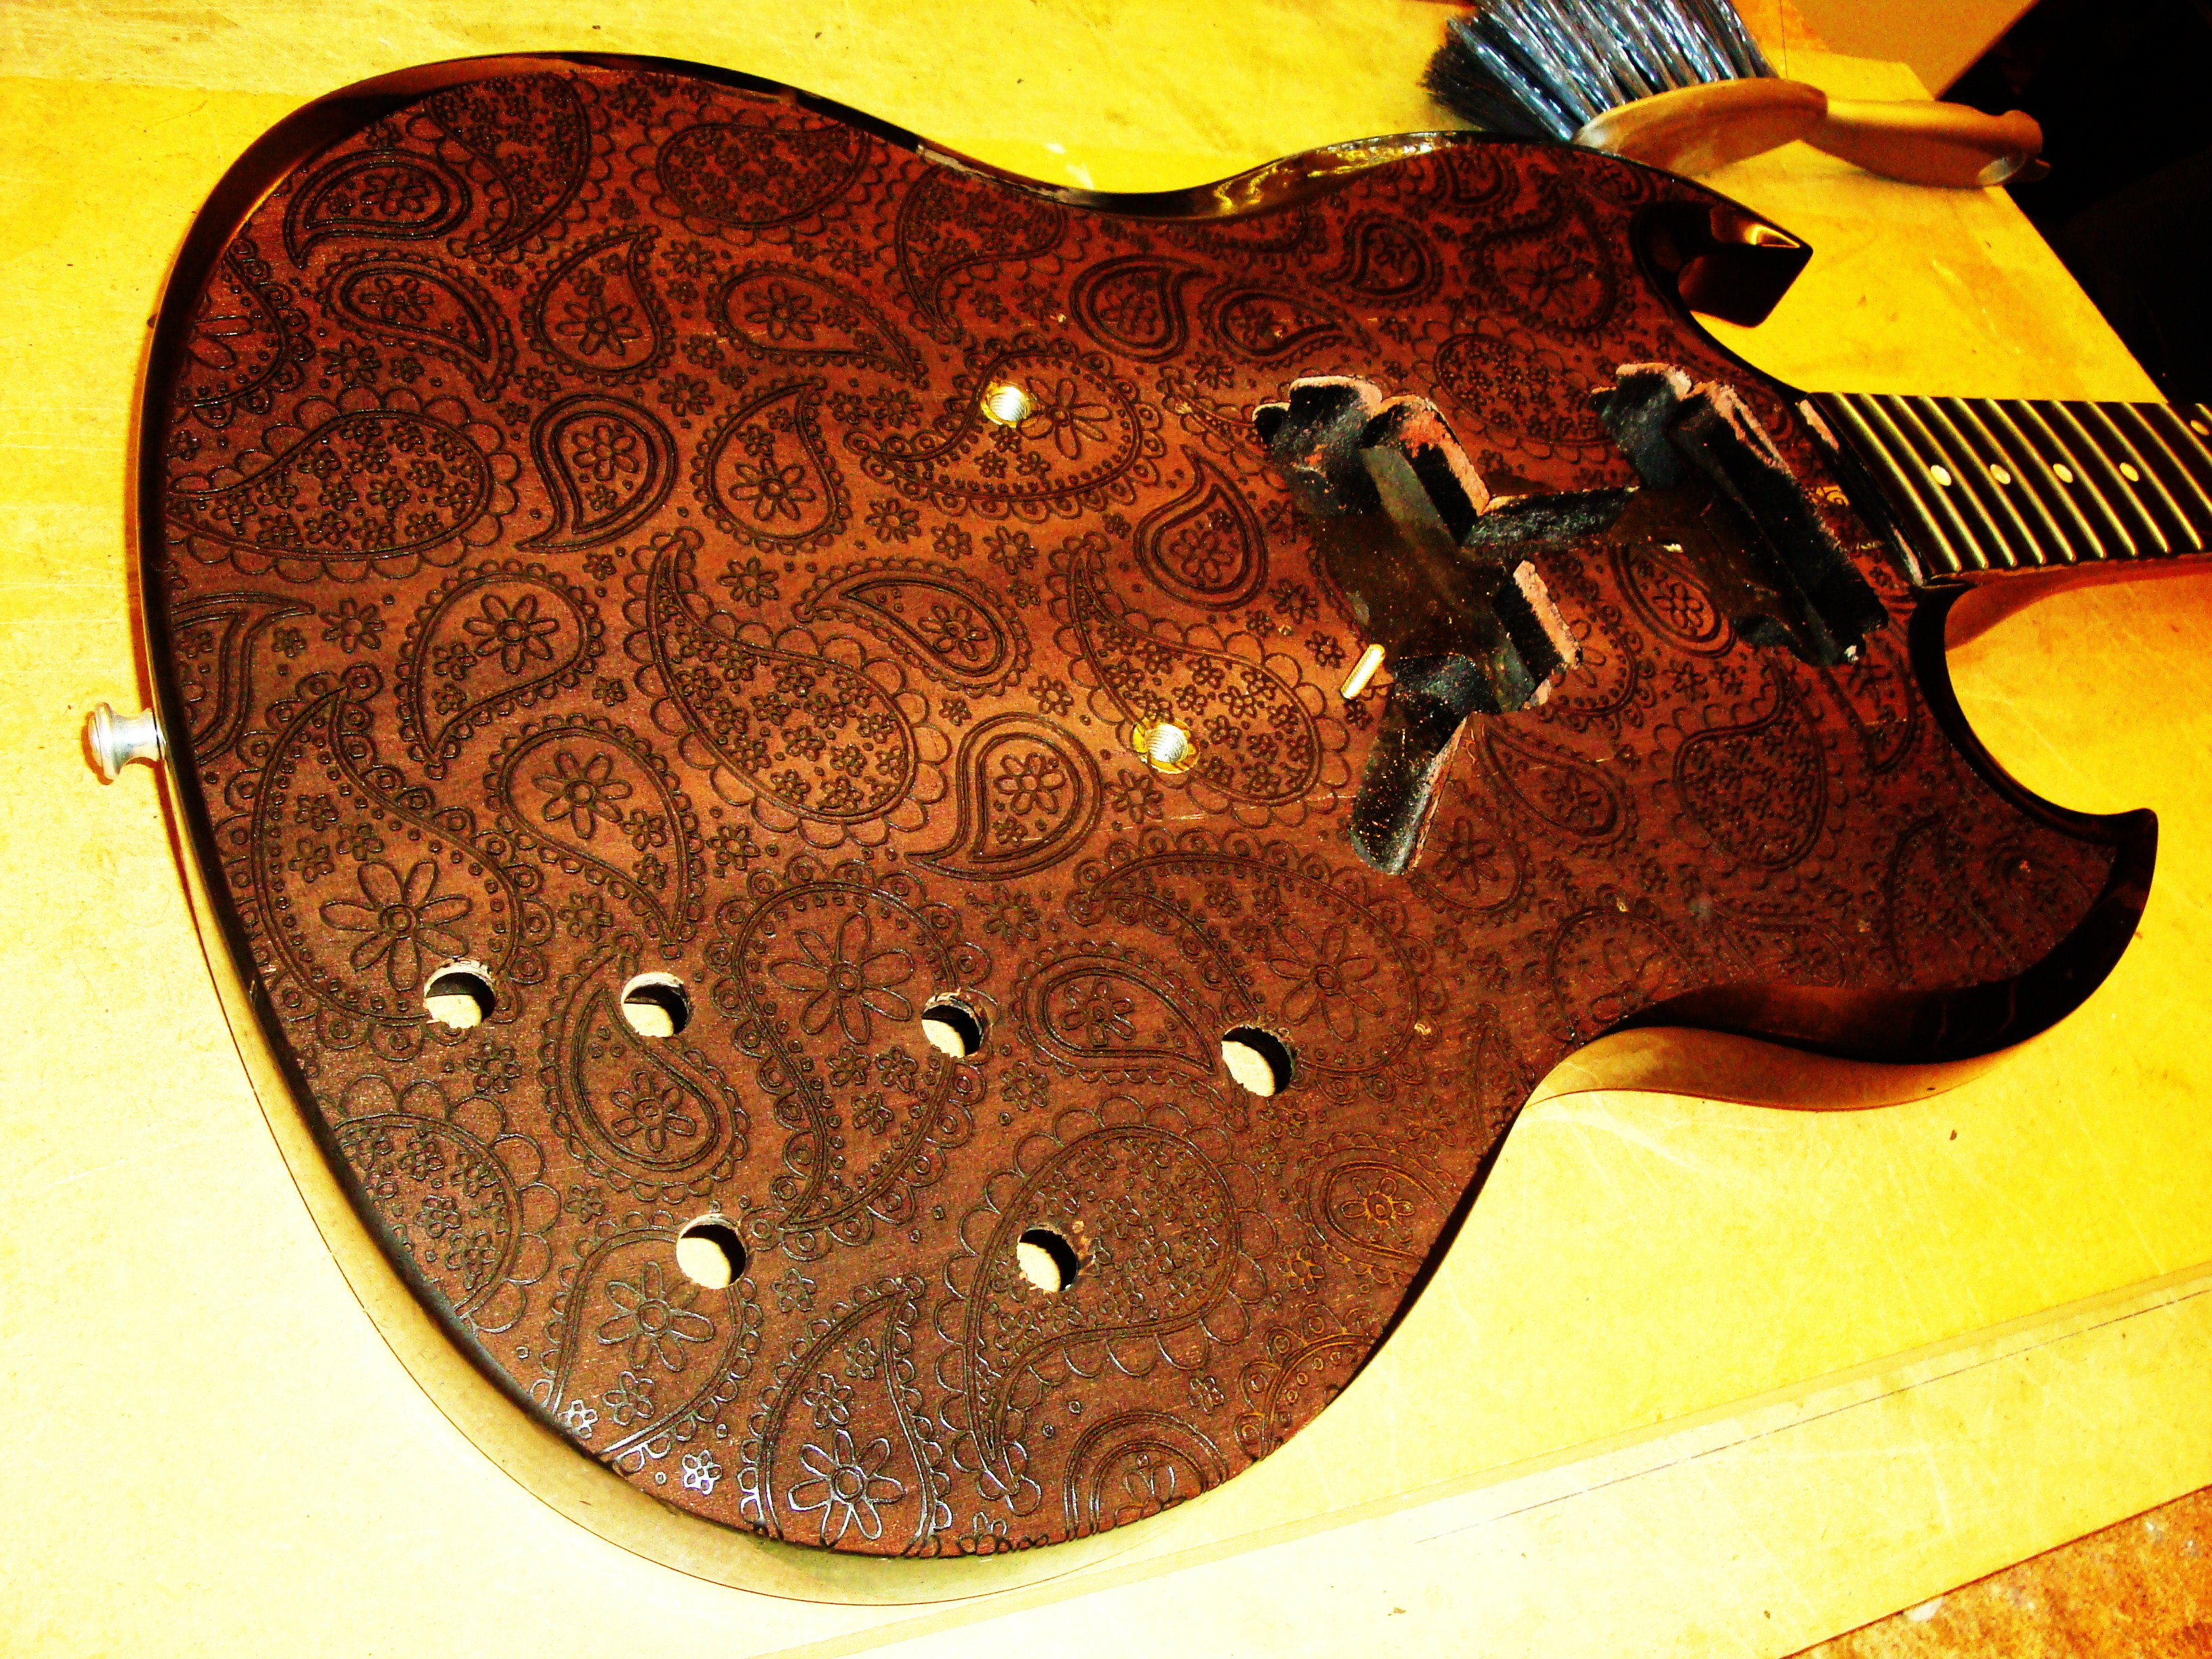 Engraved SG guitar with Paisley pattern April 2010